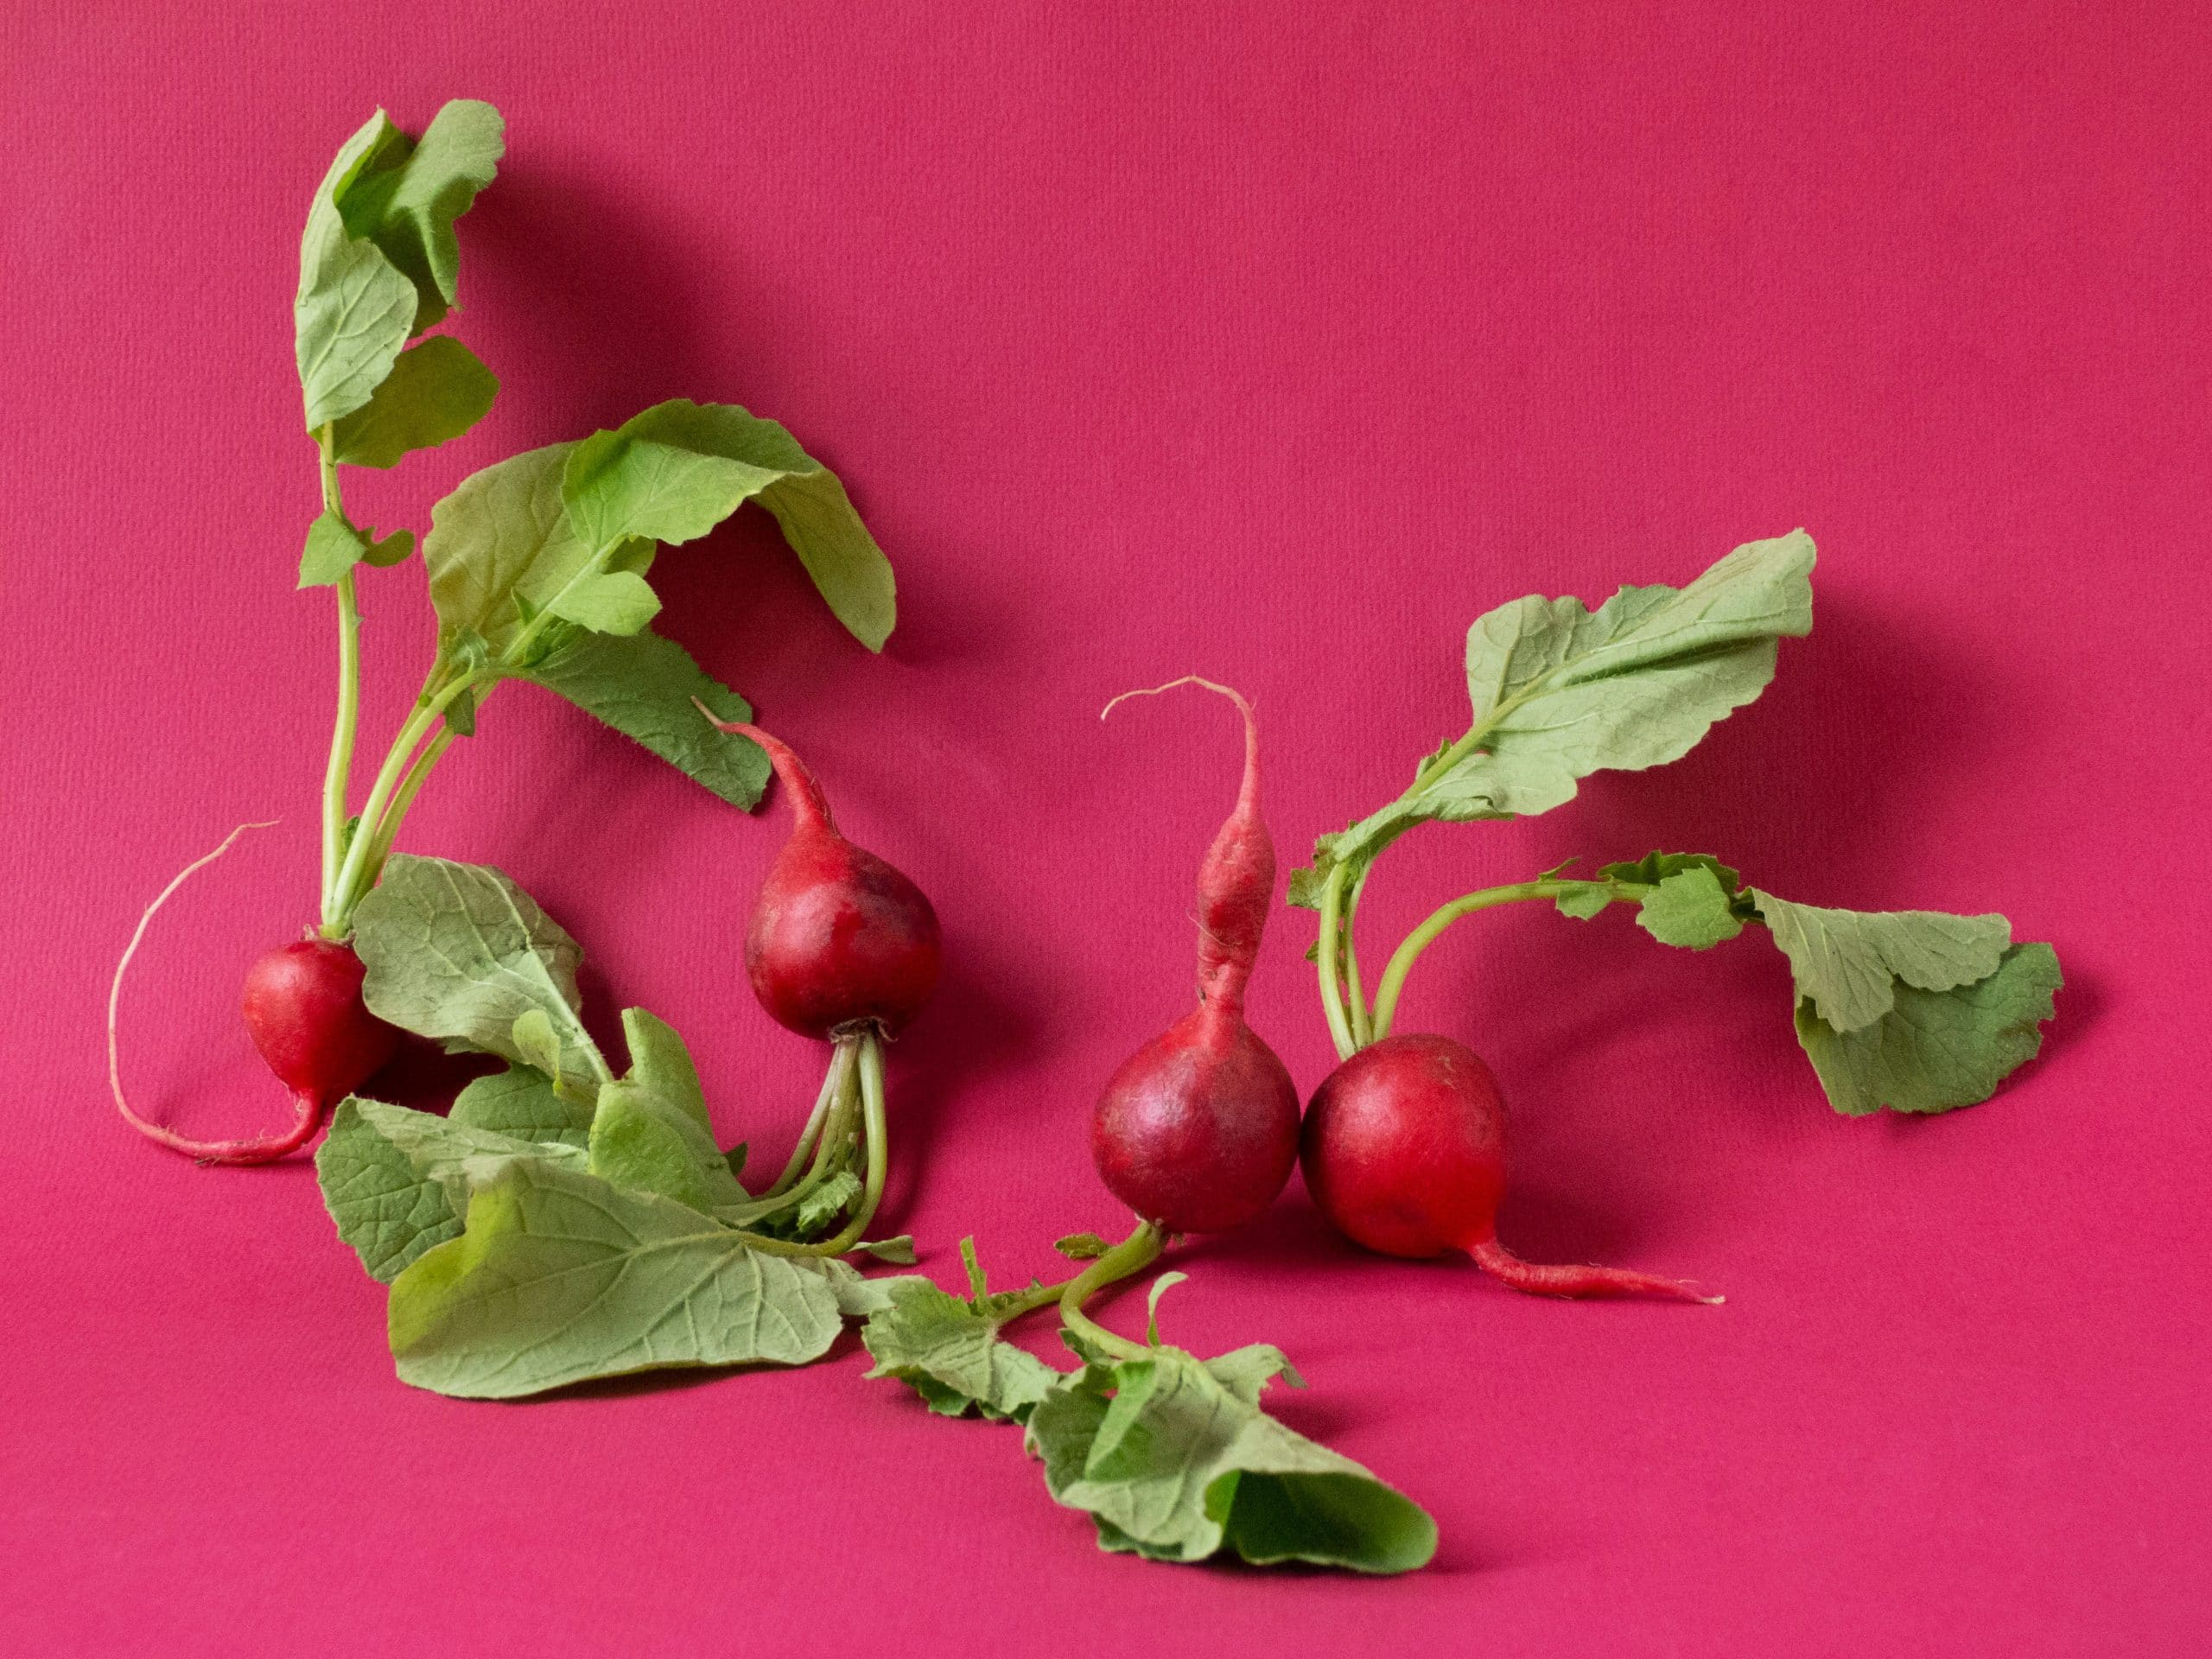 how long do radishes last